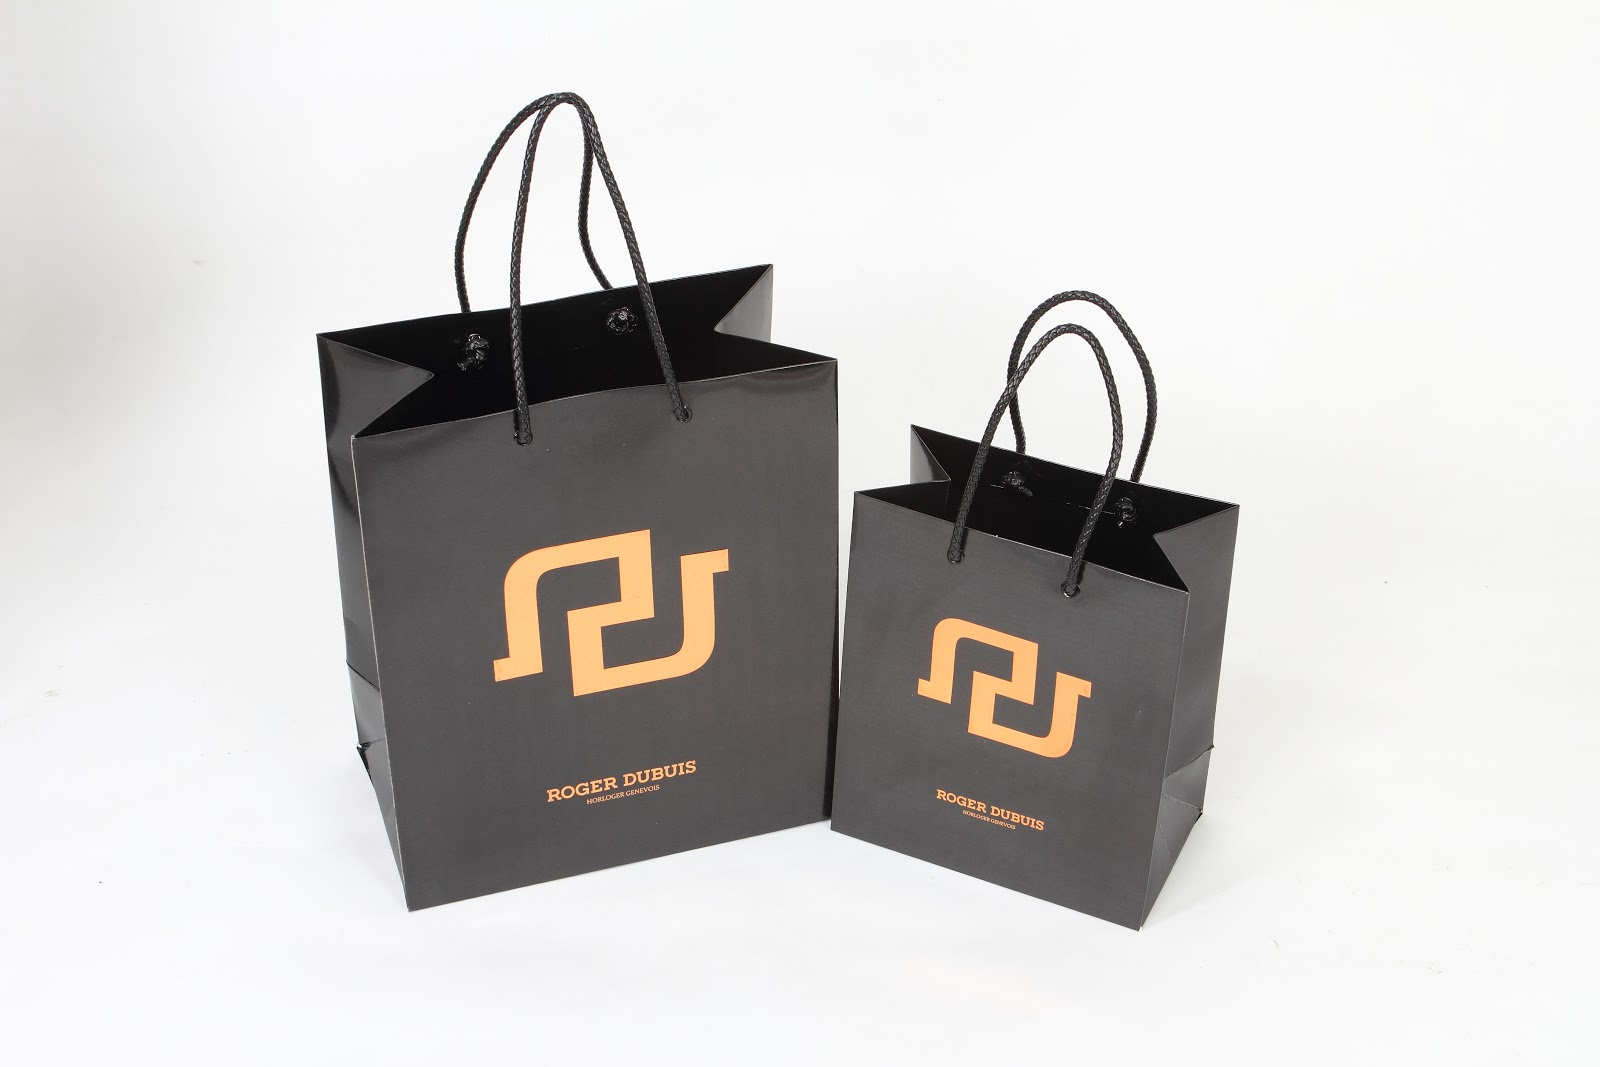 branded shopping bags images - photo #20